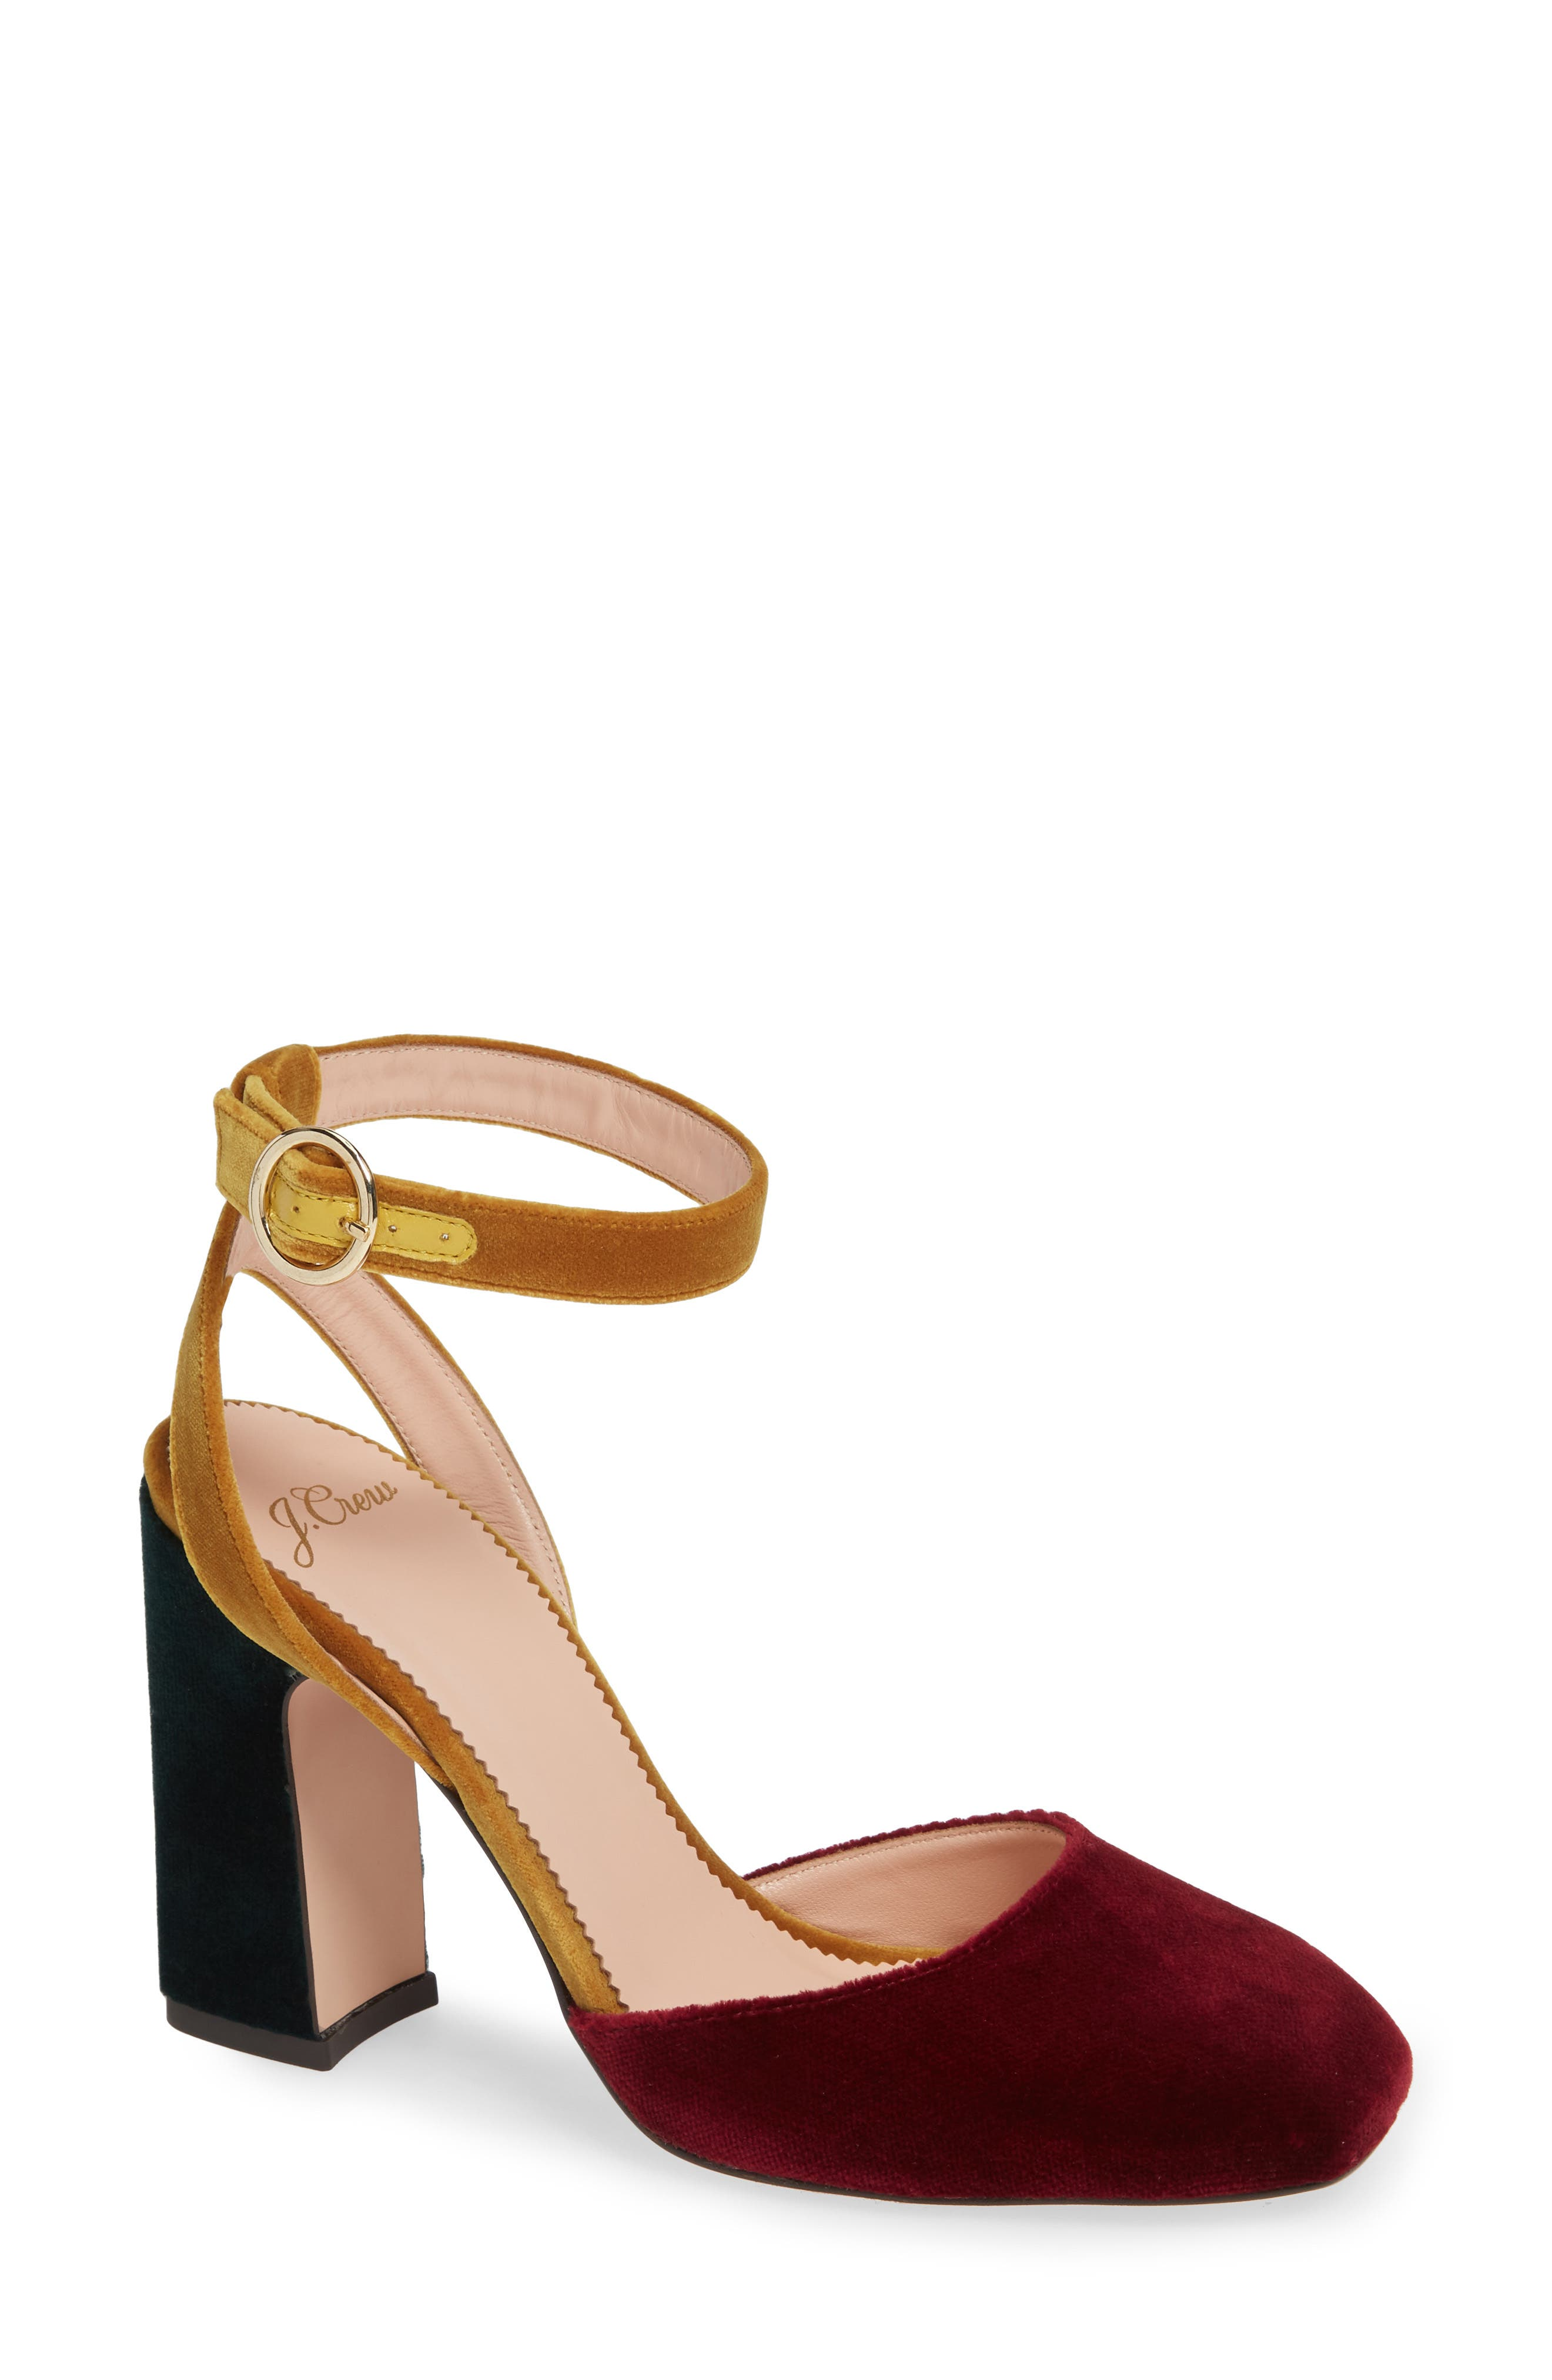 Harlow Ankle Strap Pump,                             Main thumbnail 1, color,                             BURNISHED BEET MIXED VELVET